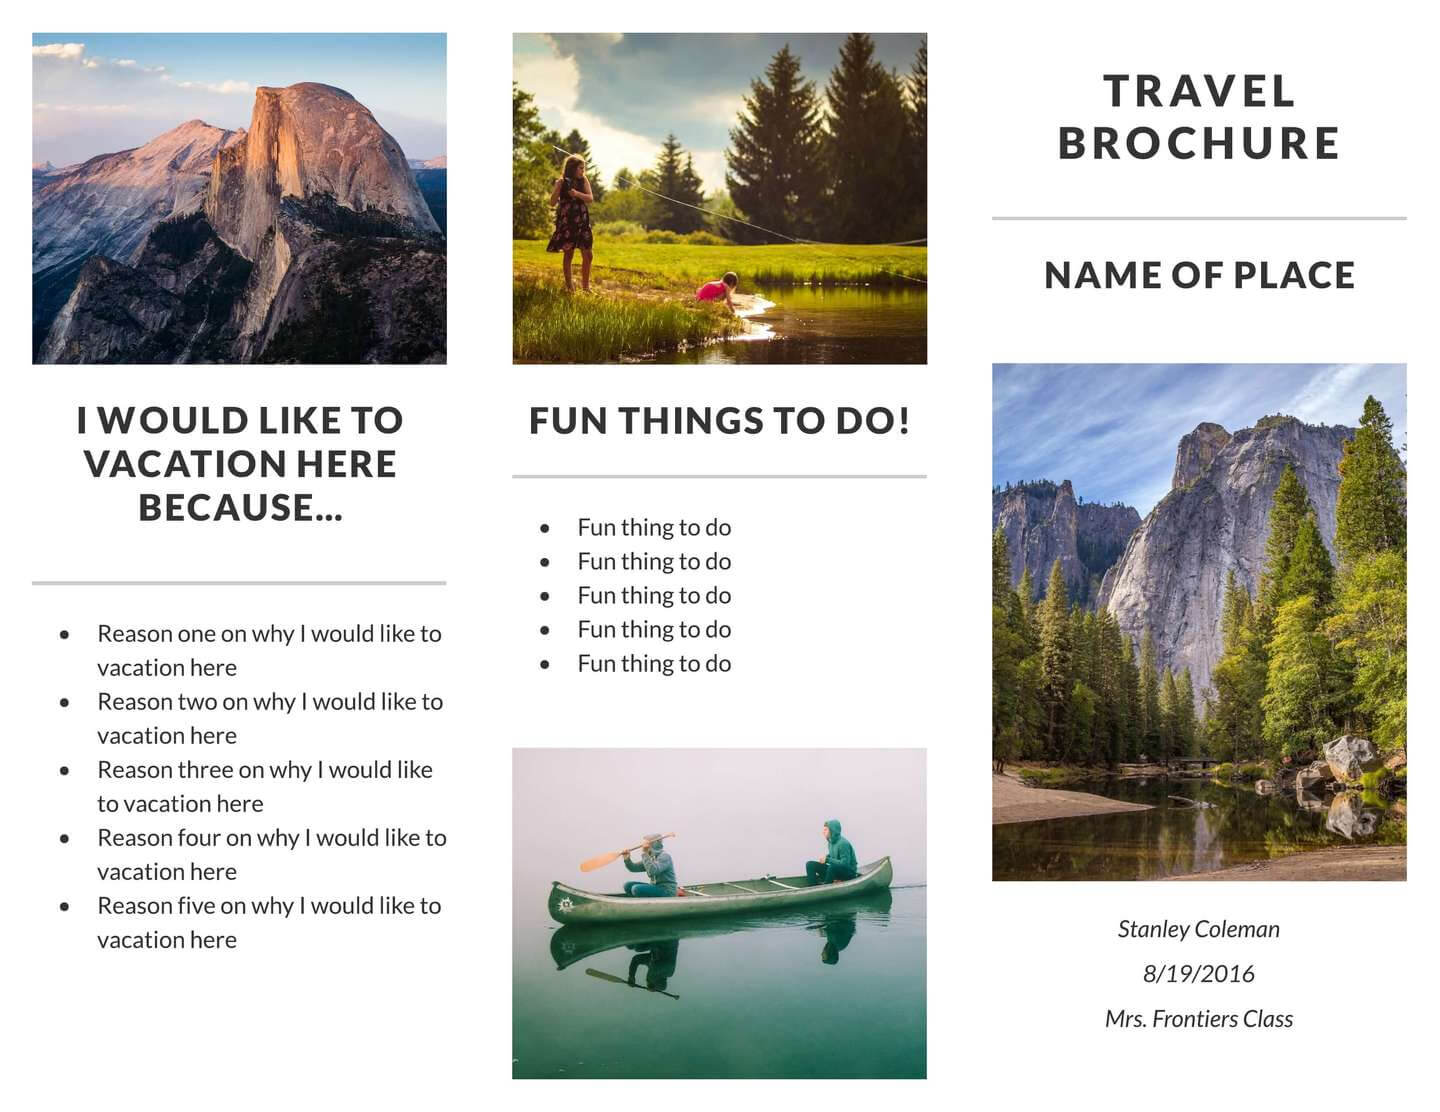 Free Travel Brochure Templates & Examples [8 Free Templates] Throughout Country Brochure Template